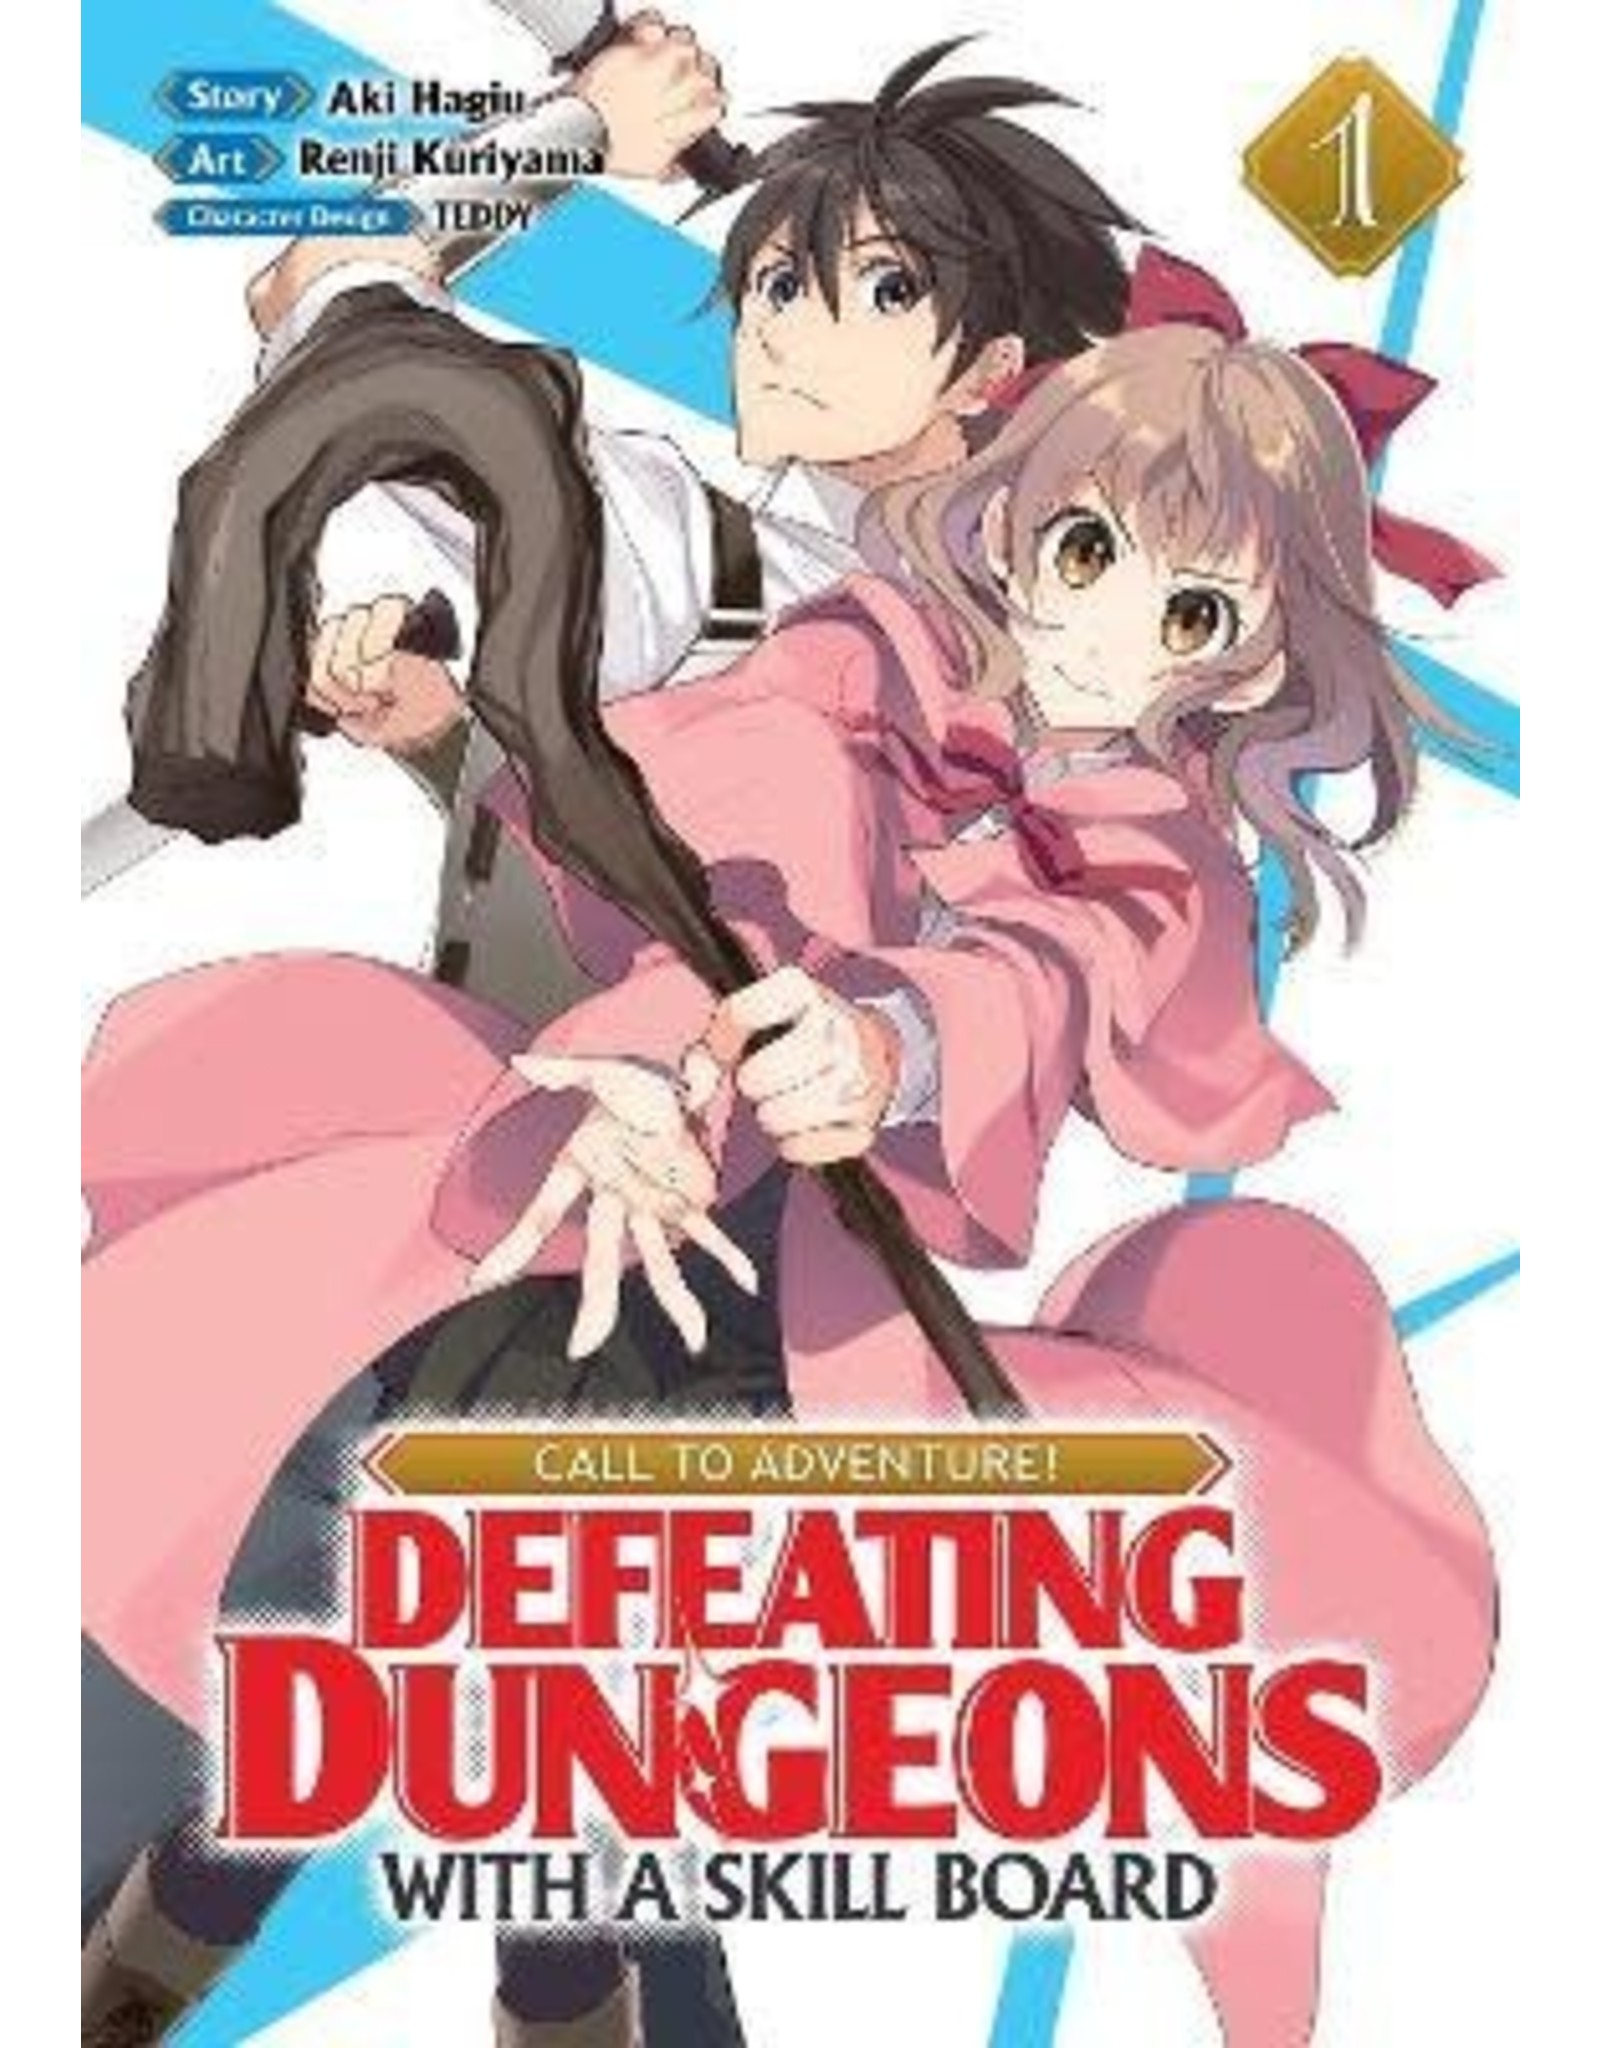 Call To Adventure: Defeating Dungeons With A Skill Board 01  (Engelstalig) - Manga